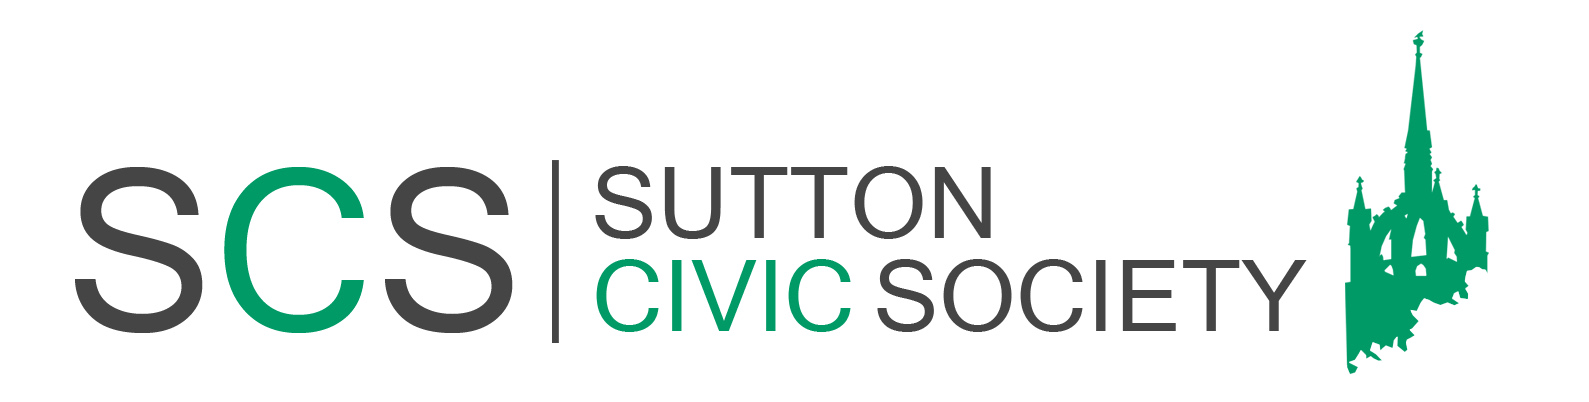 Sutton Civic Society